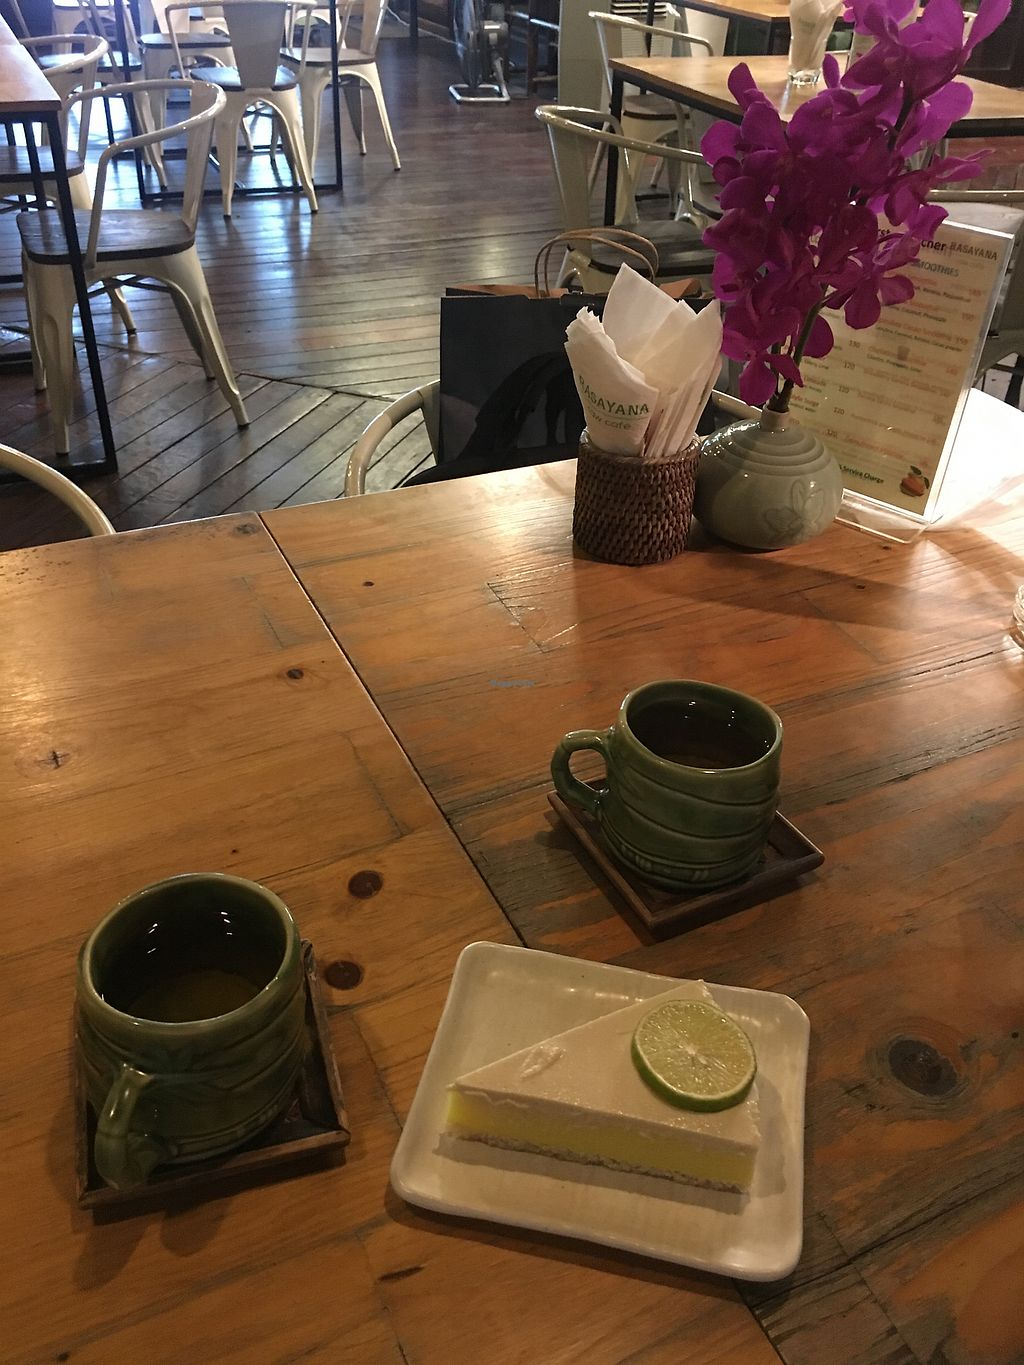 """Photo of Rasayana Raw Food Cafe  by <a href=""""/members/profile/LauraZr"""">LauraZr</a> <br/>Lemon tart  <br/> October 5, 2017  - <a href='/contact/abuse/image/3847/312026'>Report</a>"""